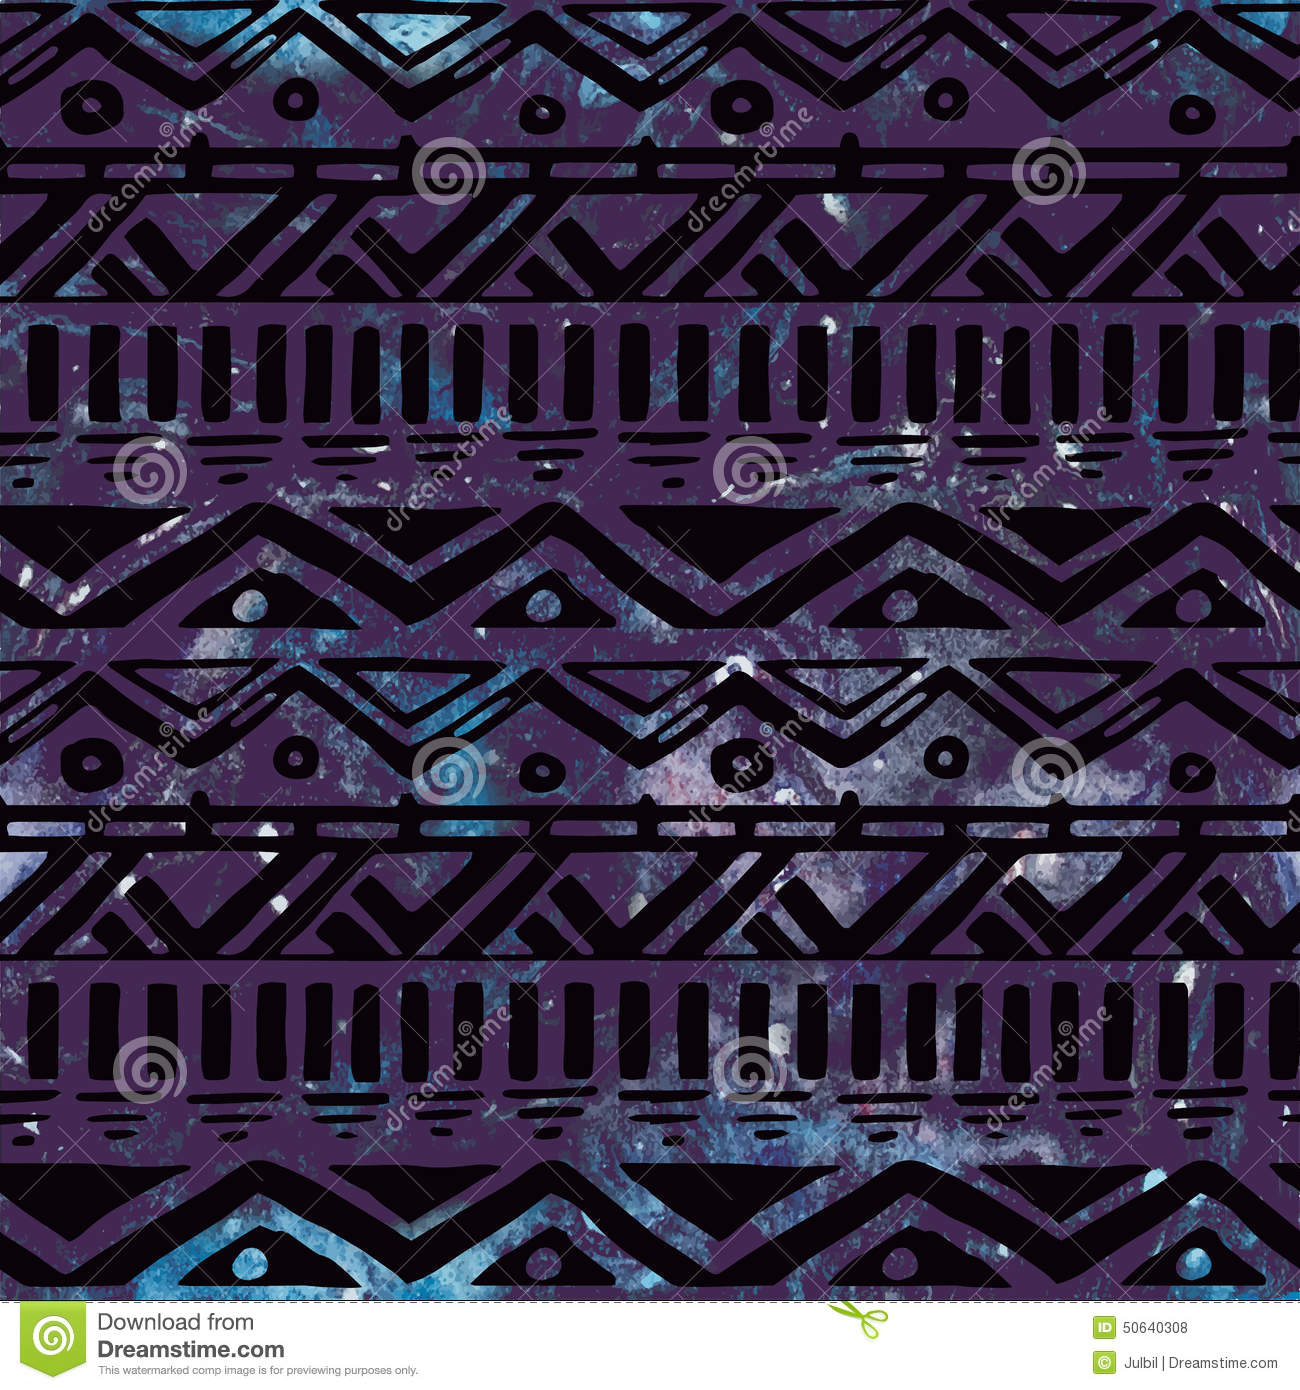 Cute Trendy Wallpapers Hand Drawn Black Aztec Tribal Seamless Background Stock